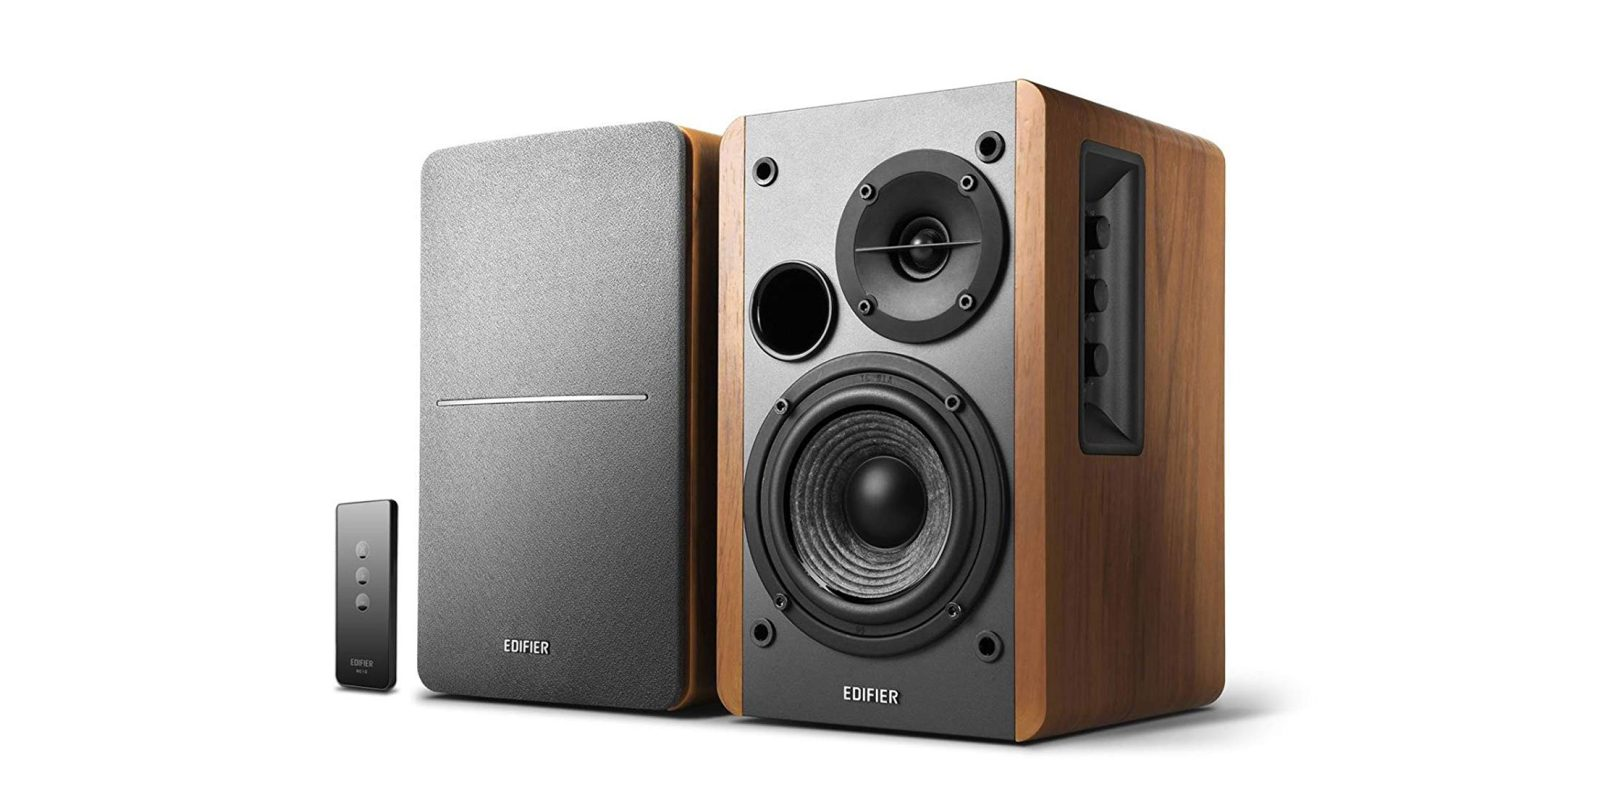 Upgrade to Edifier's top-rated bookshelf speakers for $70 (Reg. $100), more